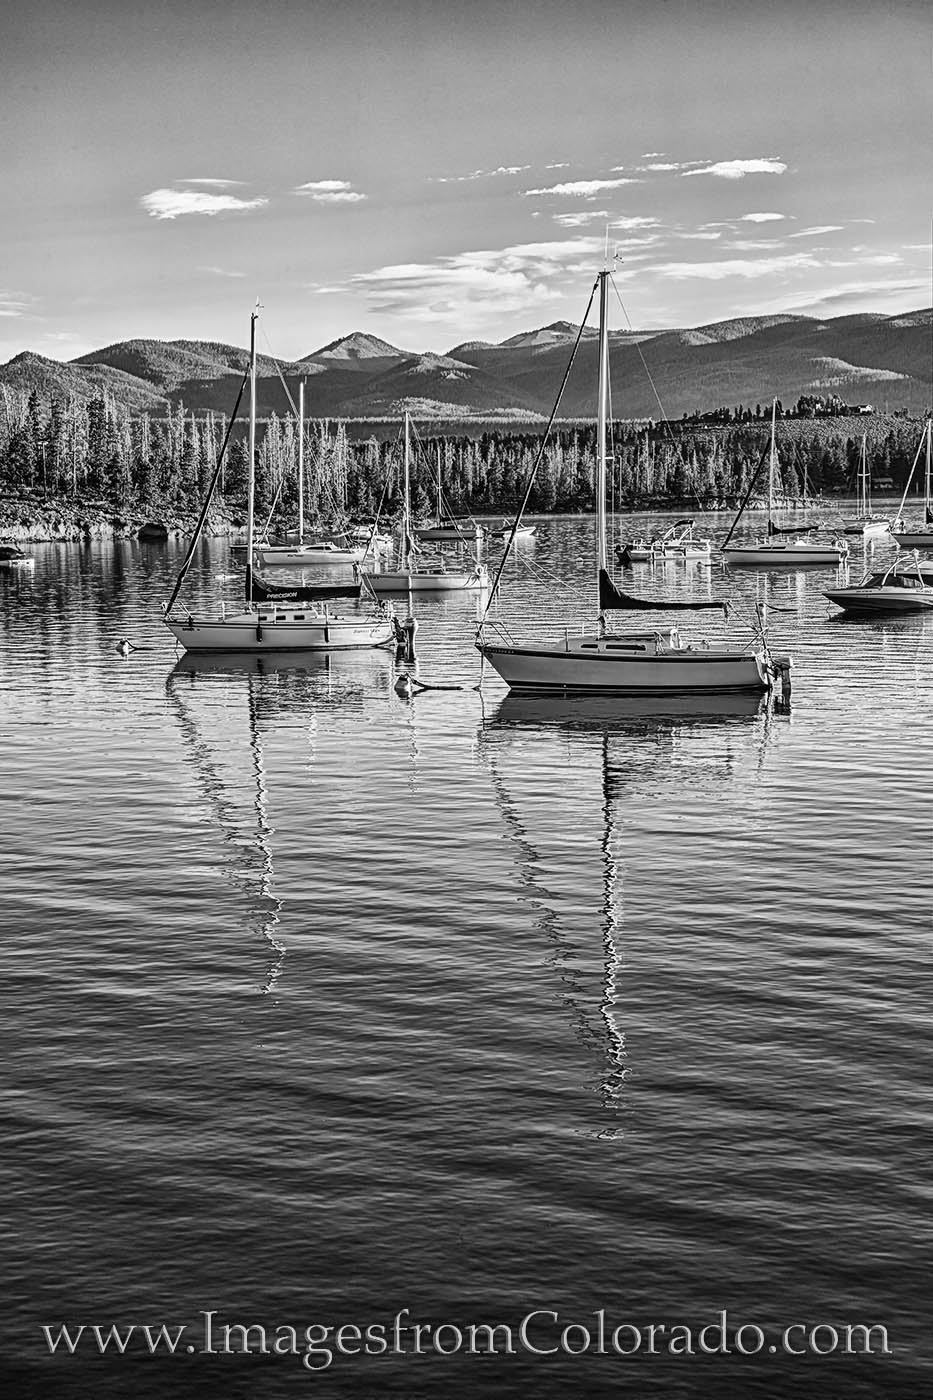 lake granby, grand county, boats, sailboats, sunshine, morning, black and white, prints for sale, best colorado, photo